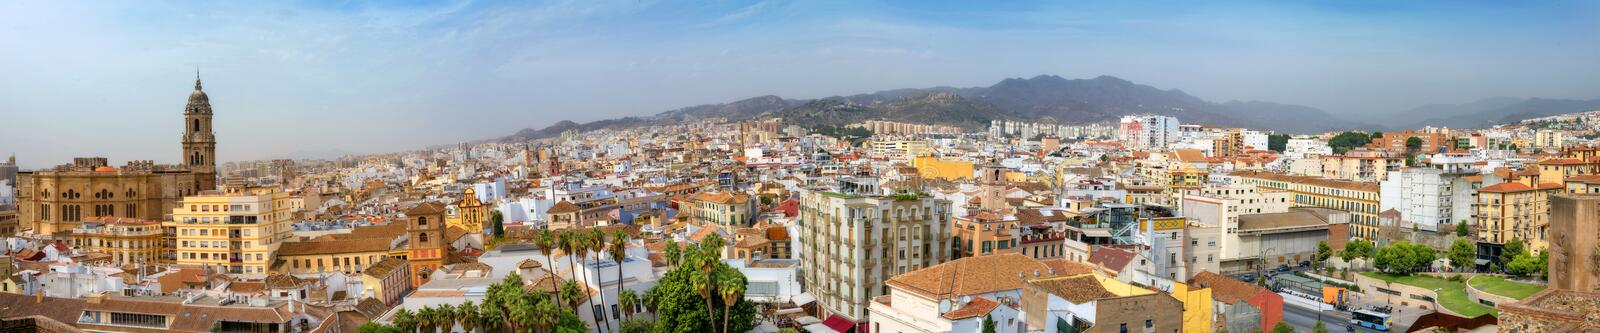 Panoramic cityscape of historic downtown with Malaga Cathedral. Malaga, Andalusia, Spain stock images